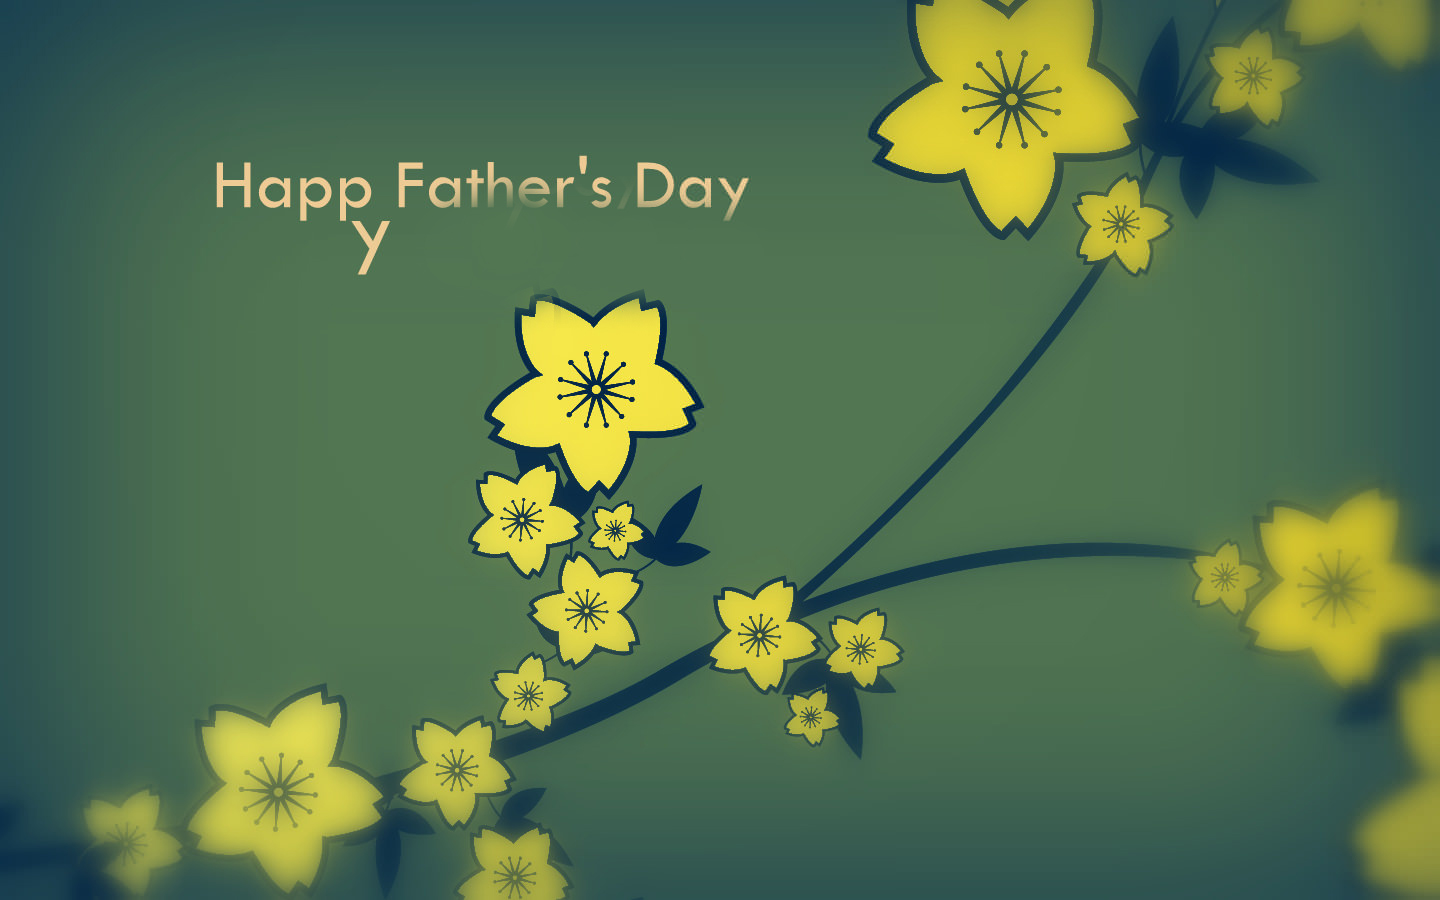 Amazing fathers day images free download